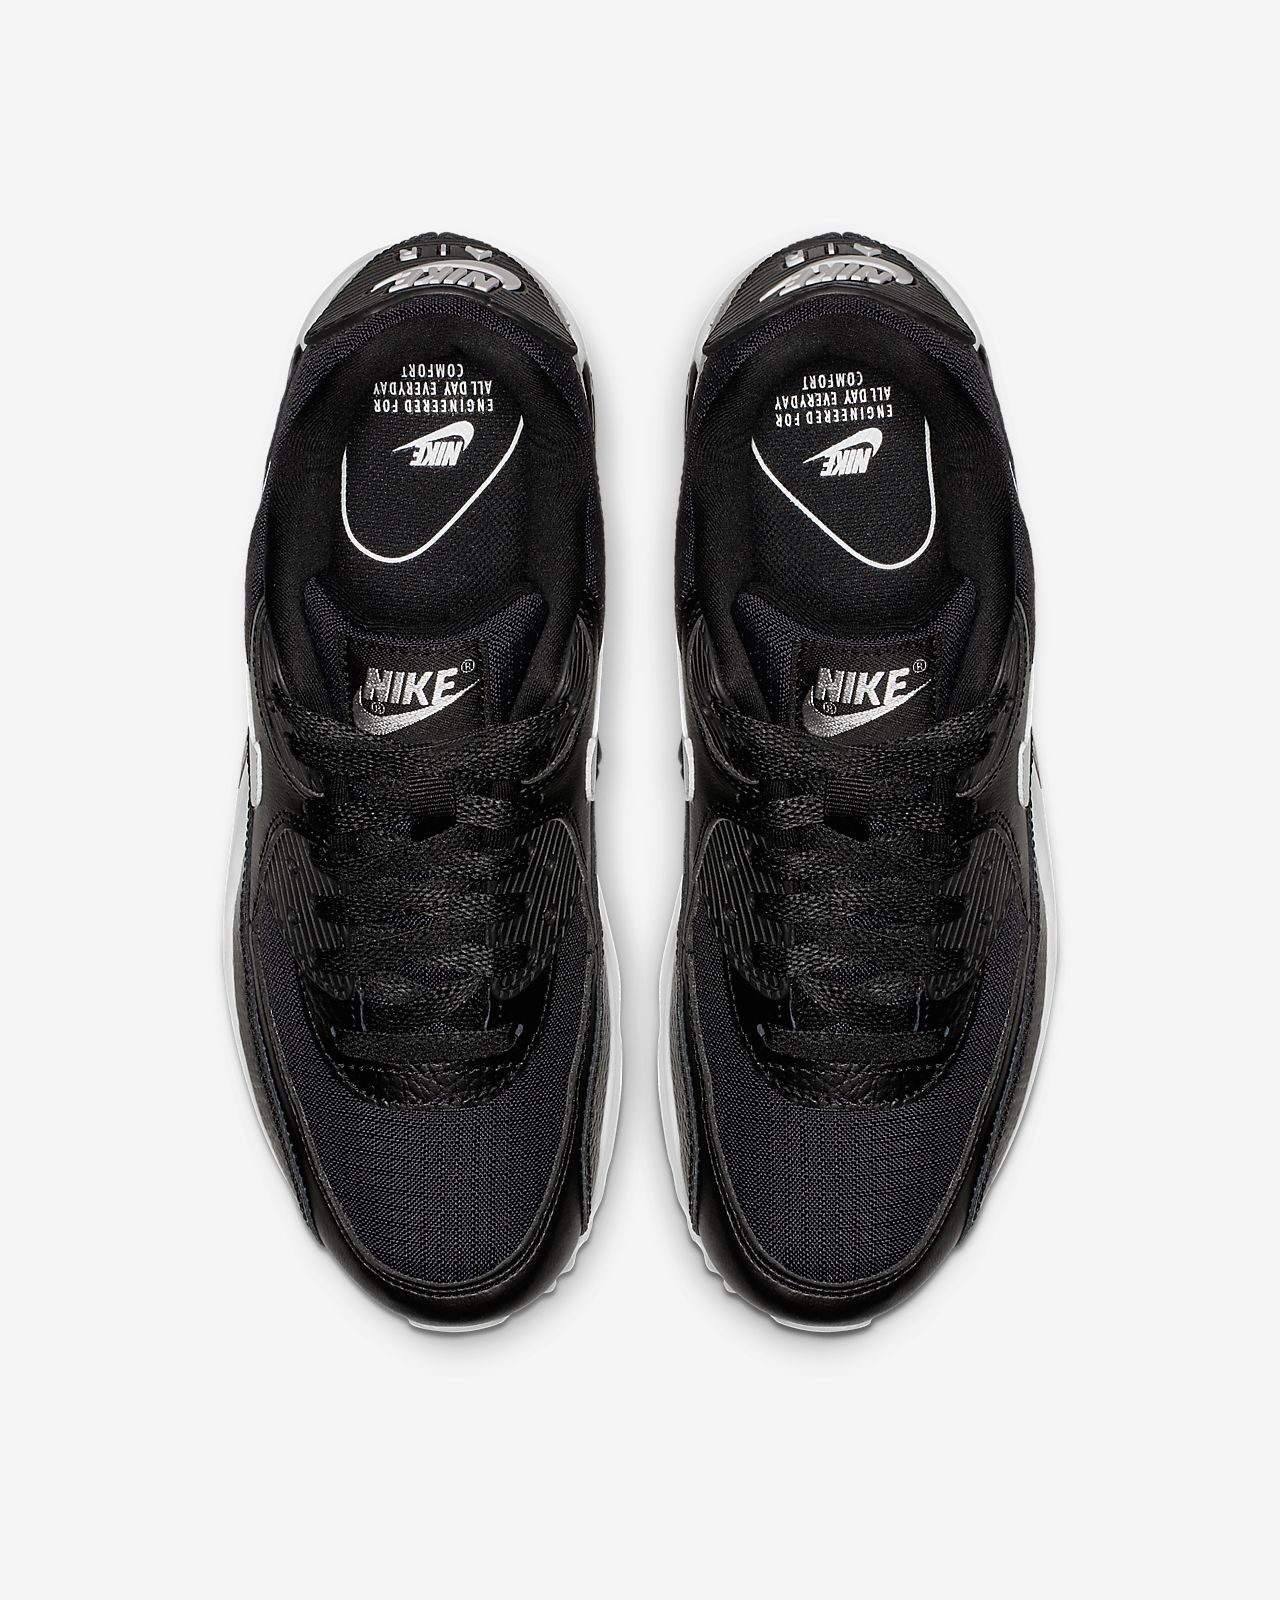 on sale 22242 ee8c1 ... Nike Air Max 90 Womens Shoe